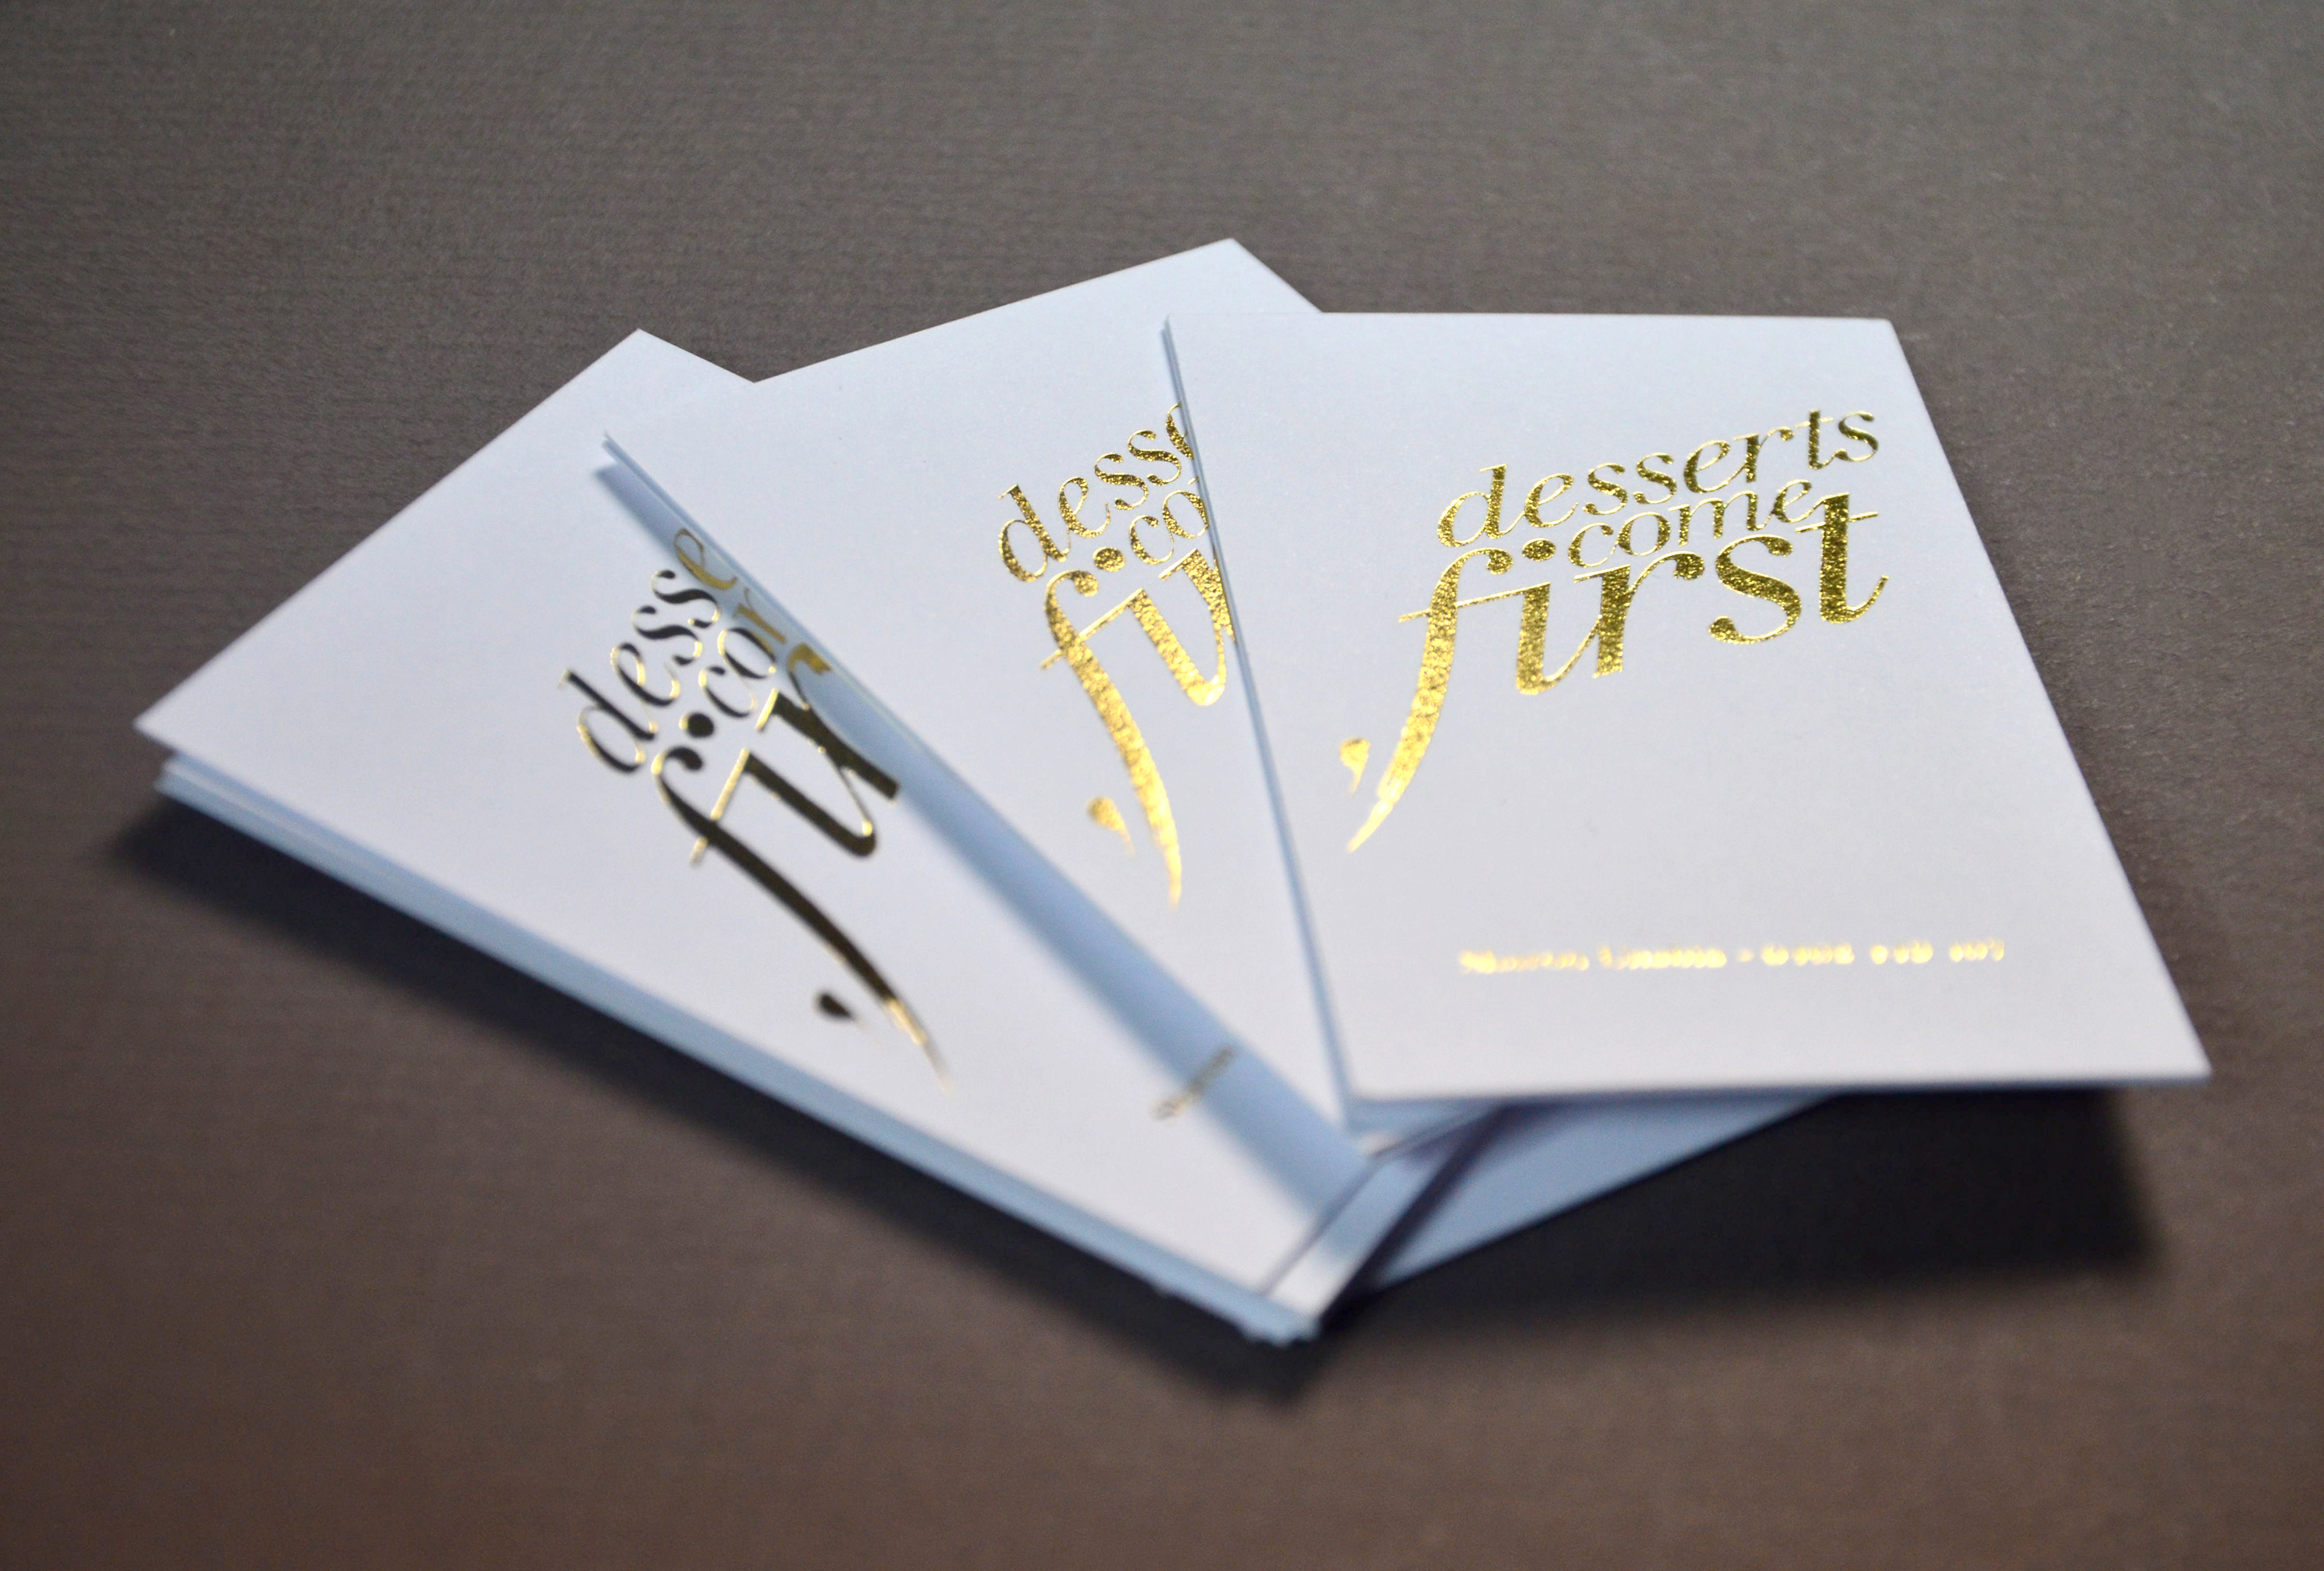 Marlo guanlao desserts come first business card this is a business card i designed for a boutique dessert company called desserts come first a custom metal plate was created to de boss gold foil onto the colourmoves